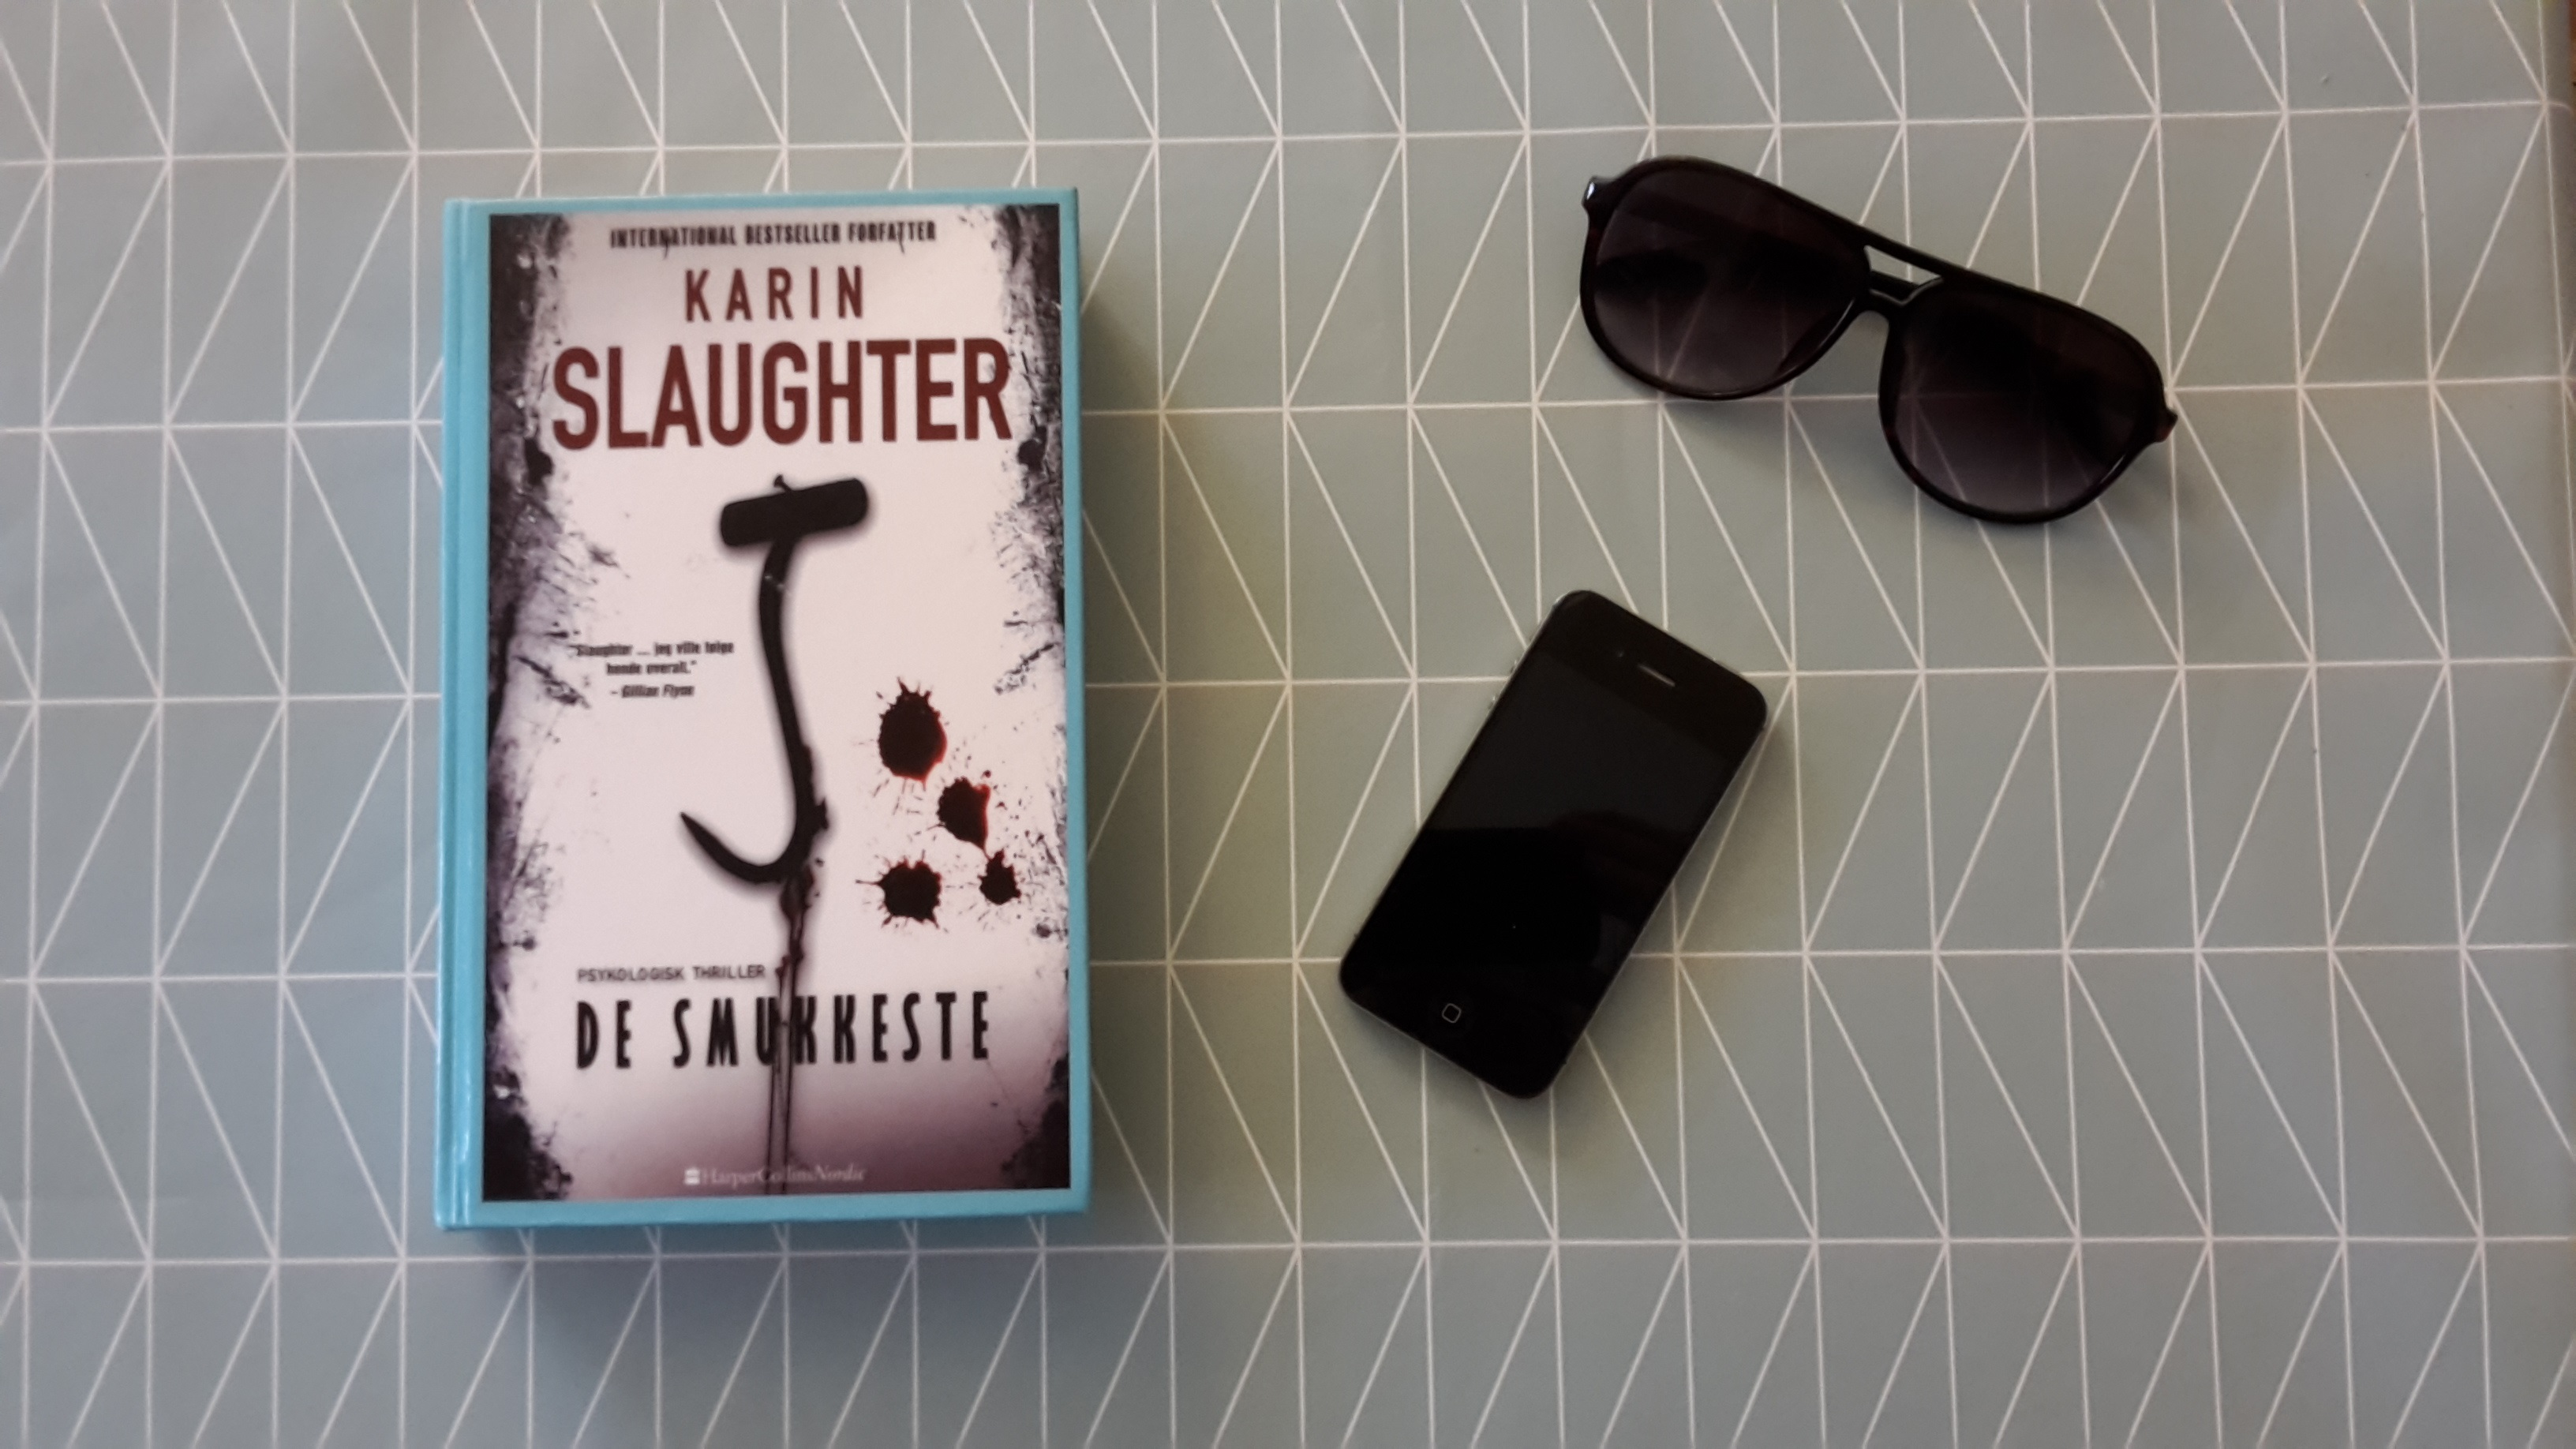 The book Pretty Girls by Karin Slaughter lies on a table with a smart phone and a pair of sunglasses. The table is covered in a blue table cloth.